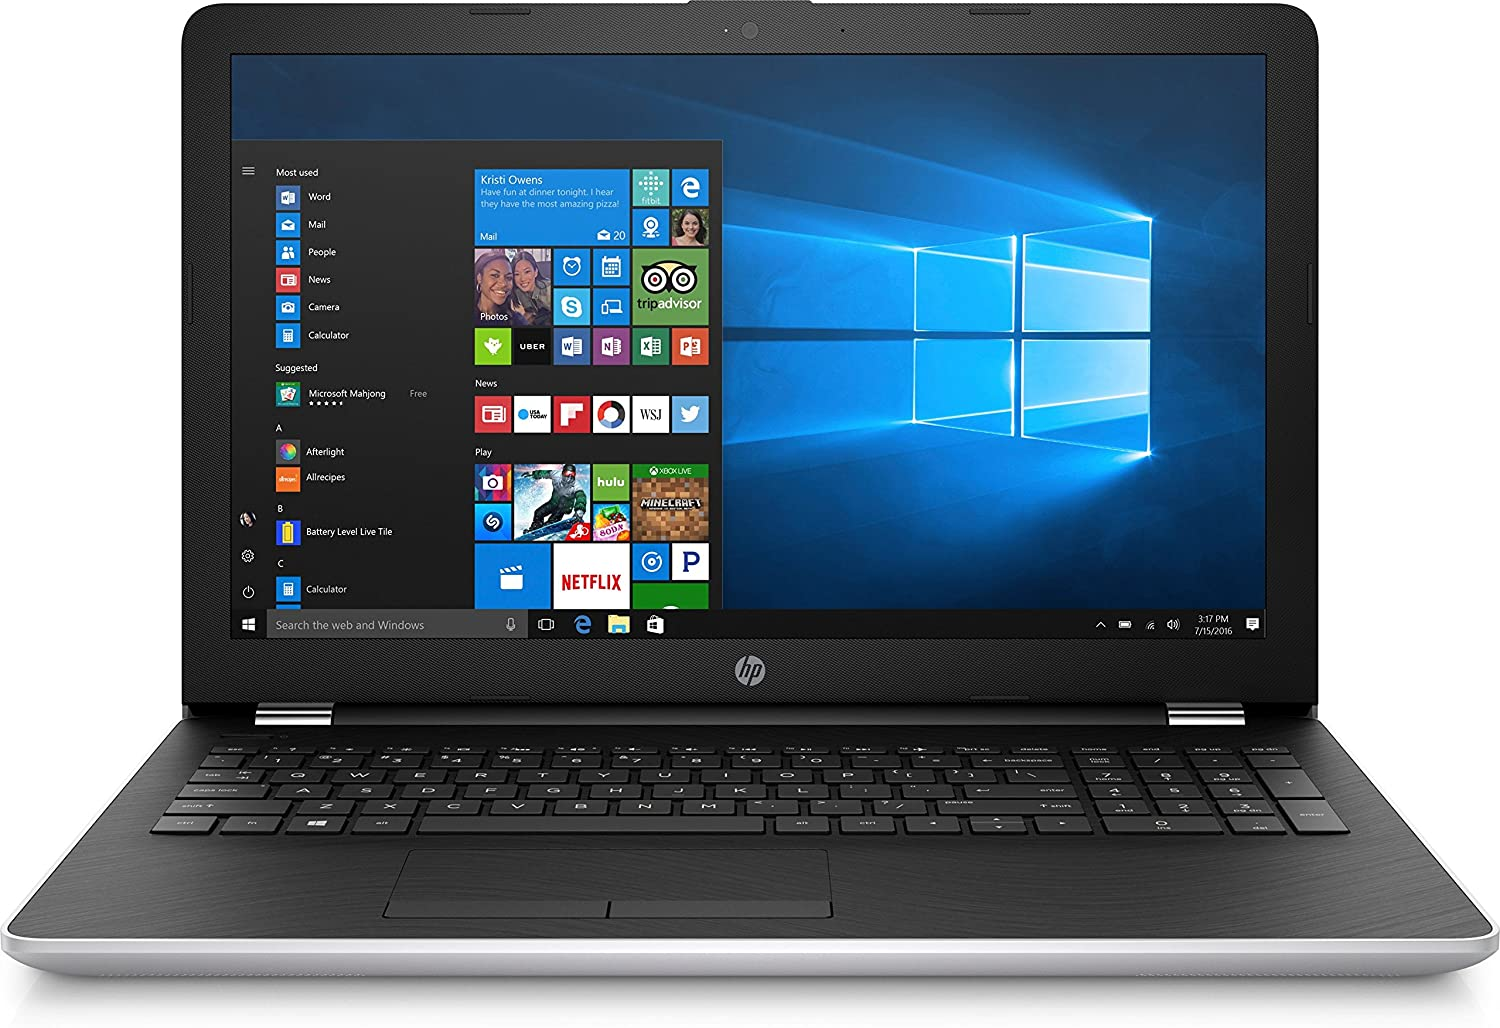 HP 15-bw027nl Notebook PC, Processore AMD A9-9420, 8 GB di RAM DDR4, HDD SATA da 1 TB, Argento Naturale